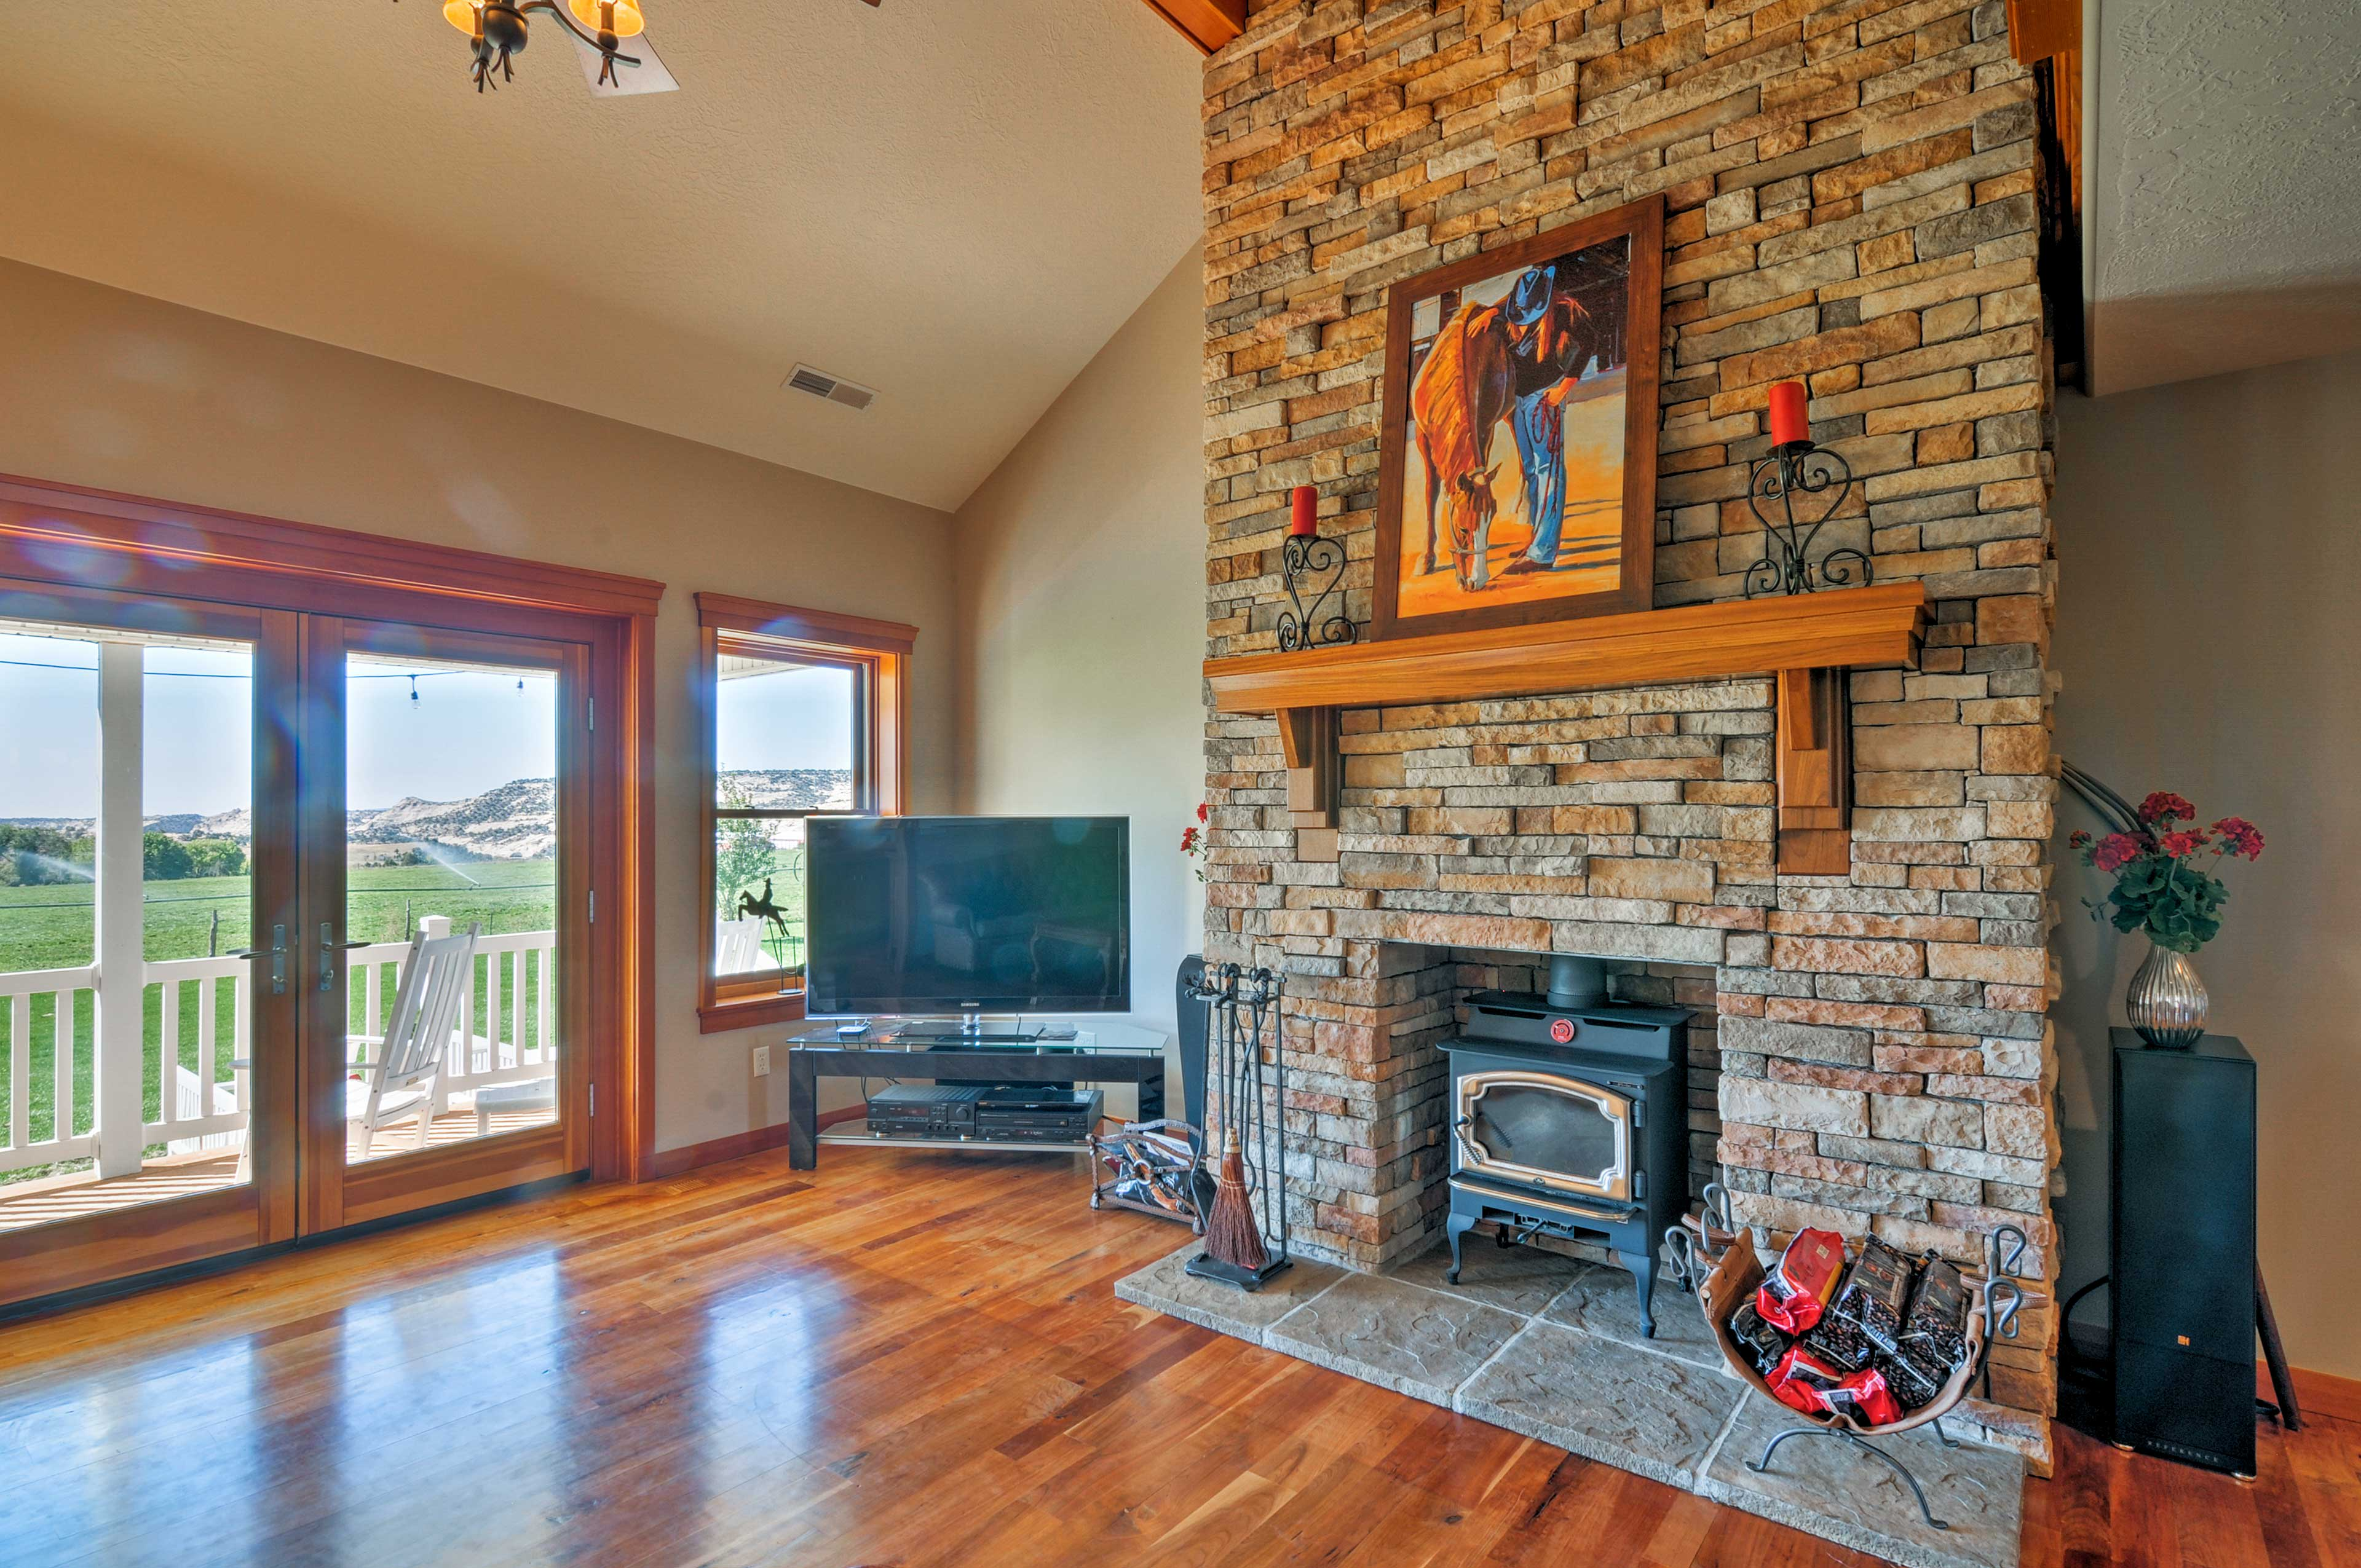 The living room features a flat-screen cable TV & wood-burning fireplace.